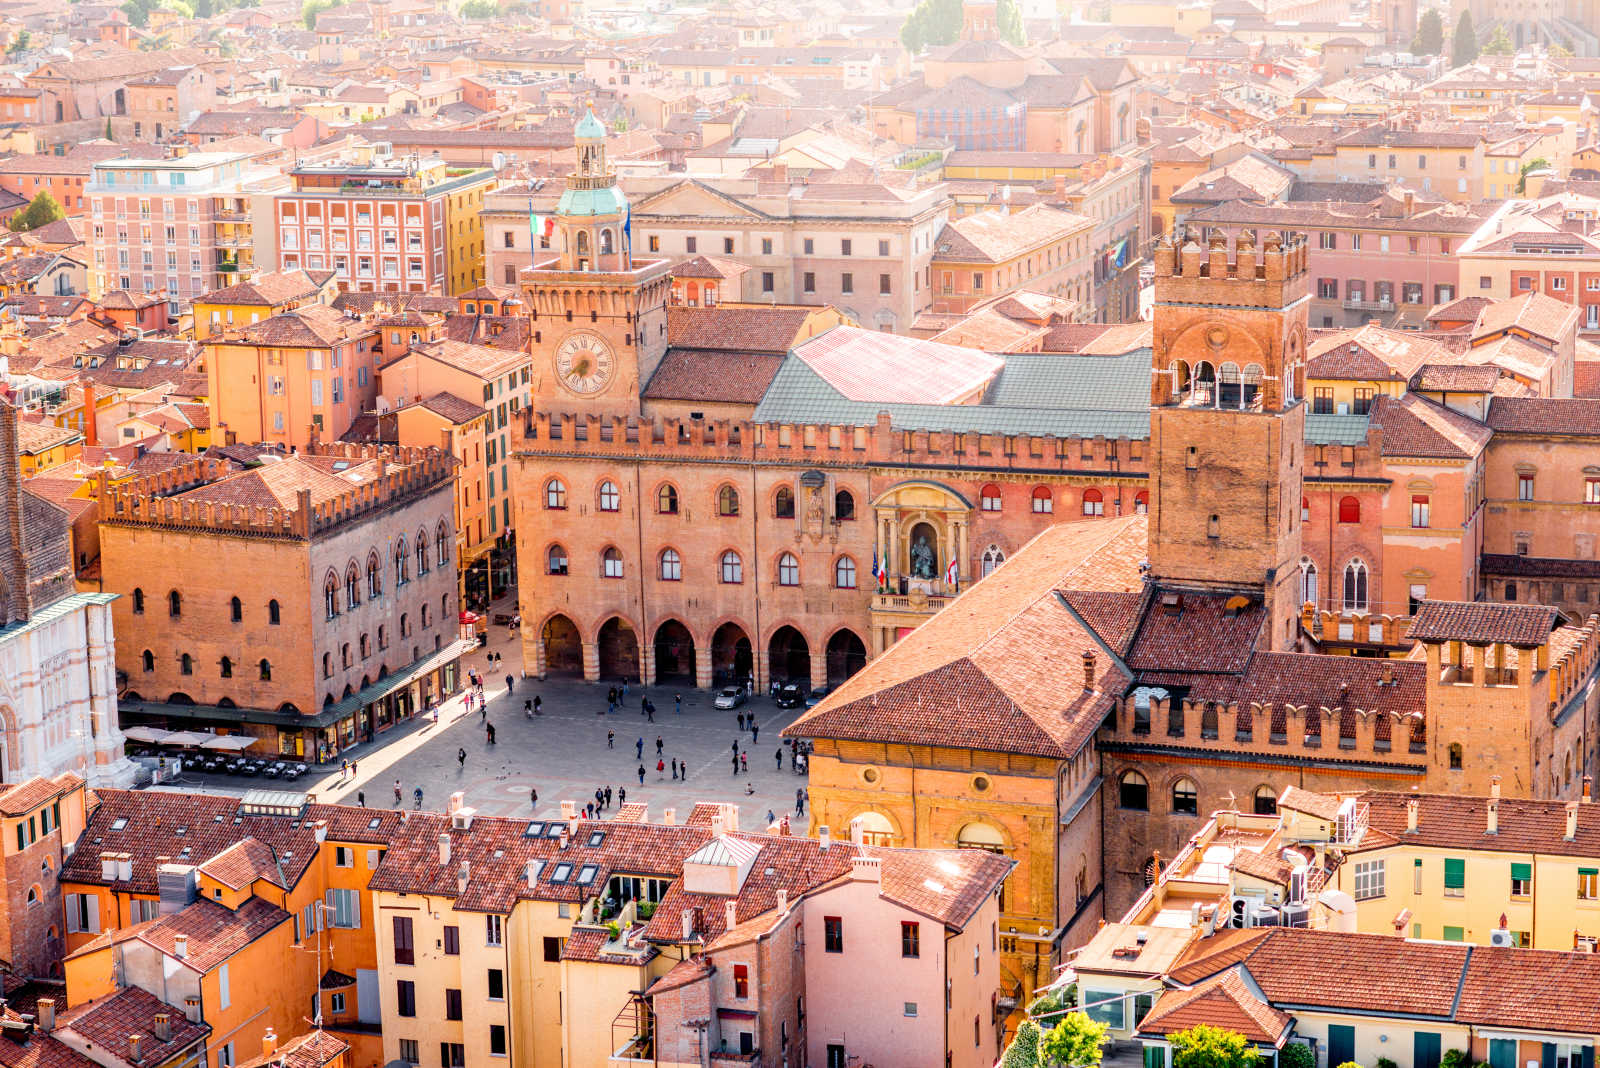 Enjoy the view of the beautiful old town on a Bologna trip